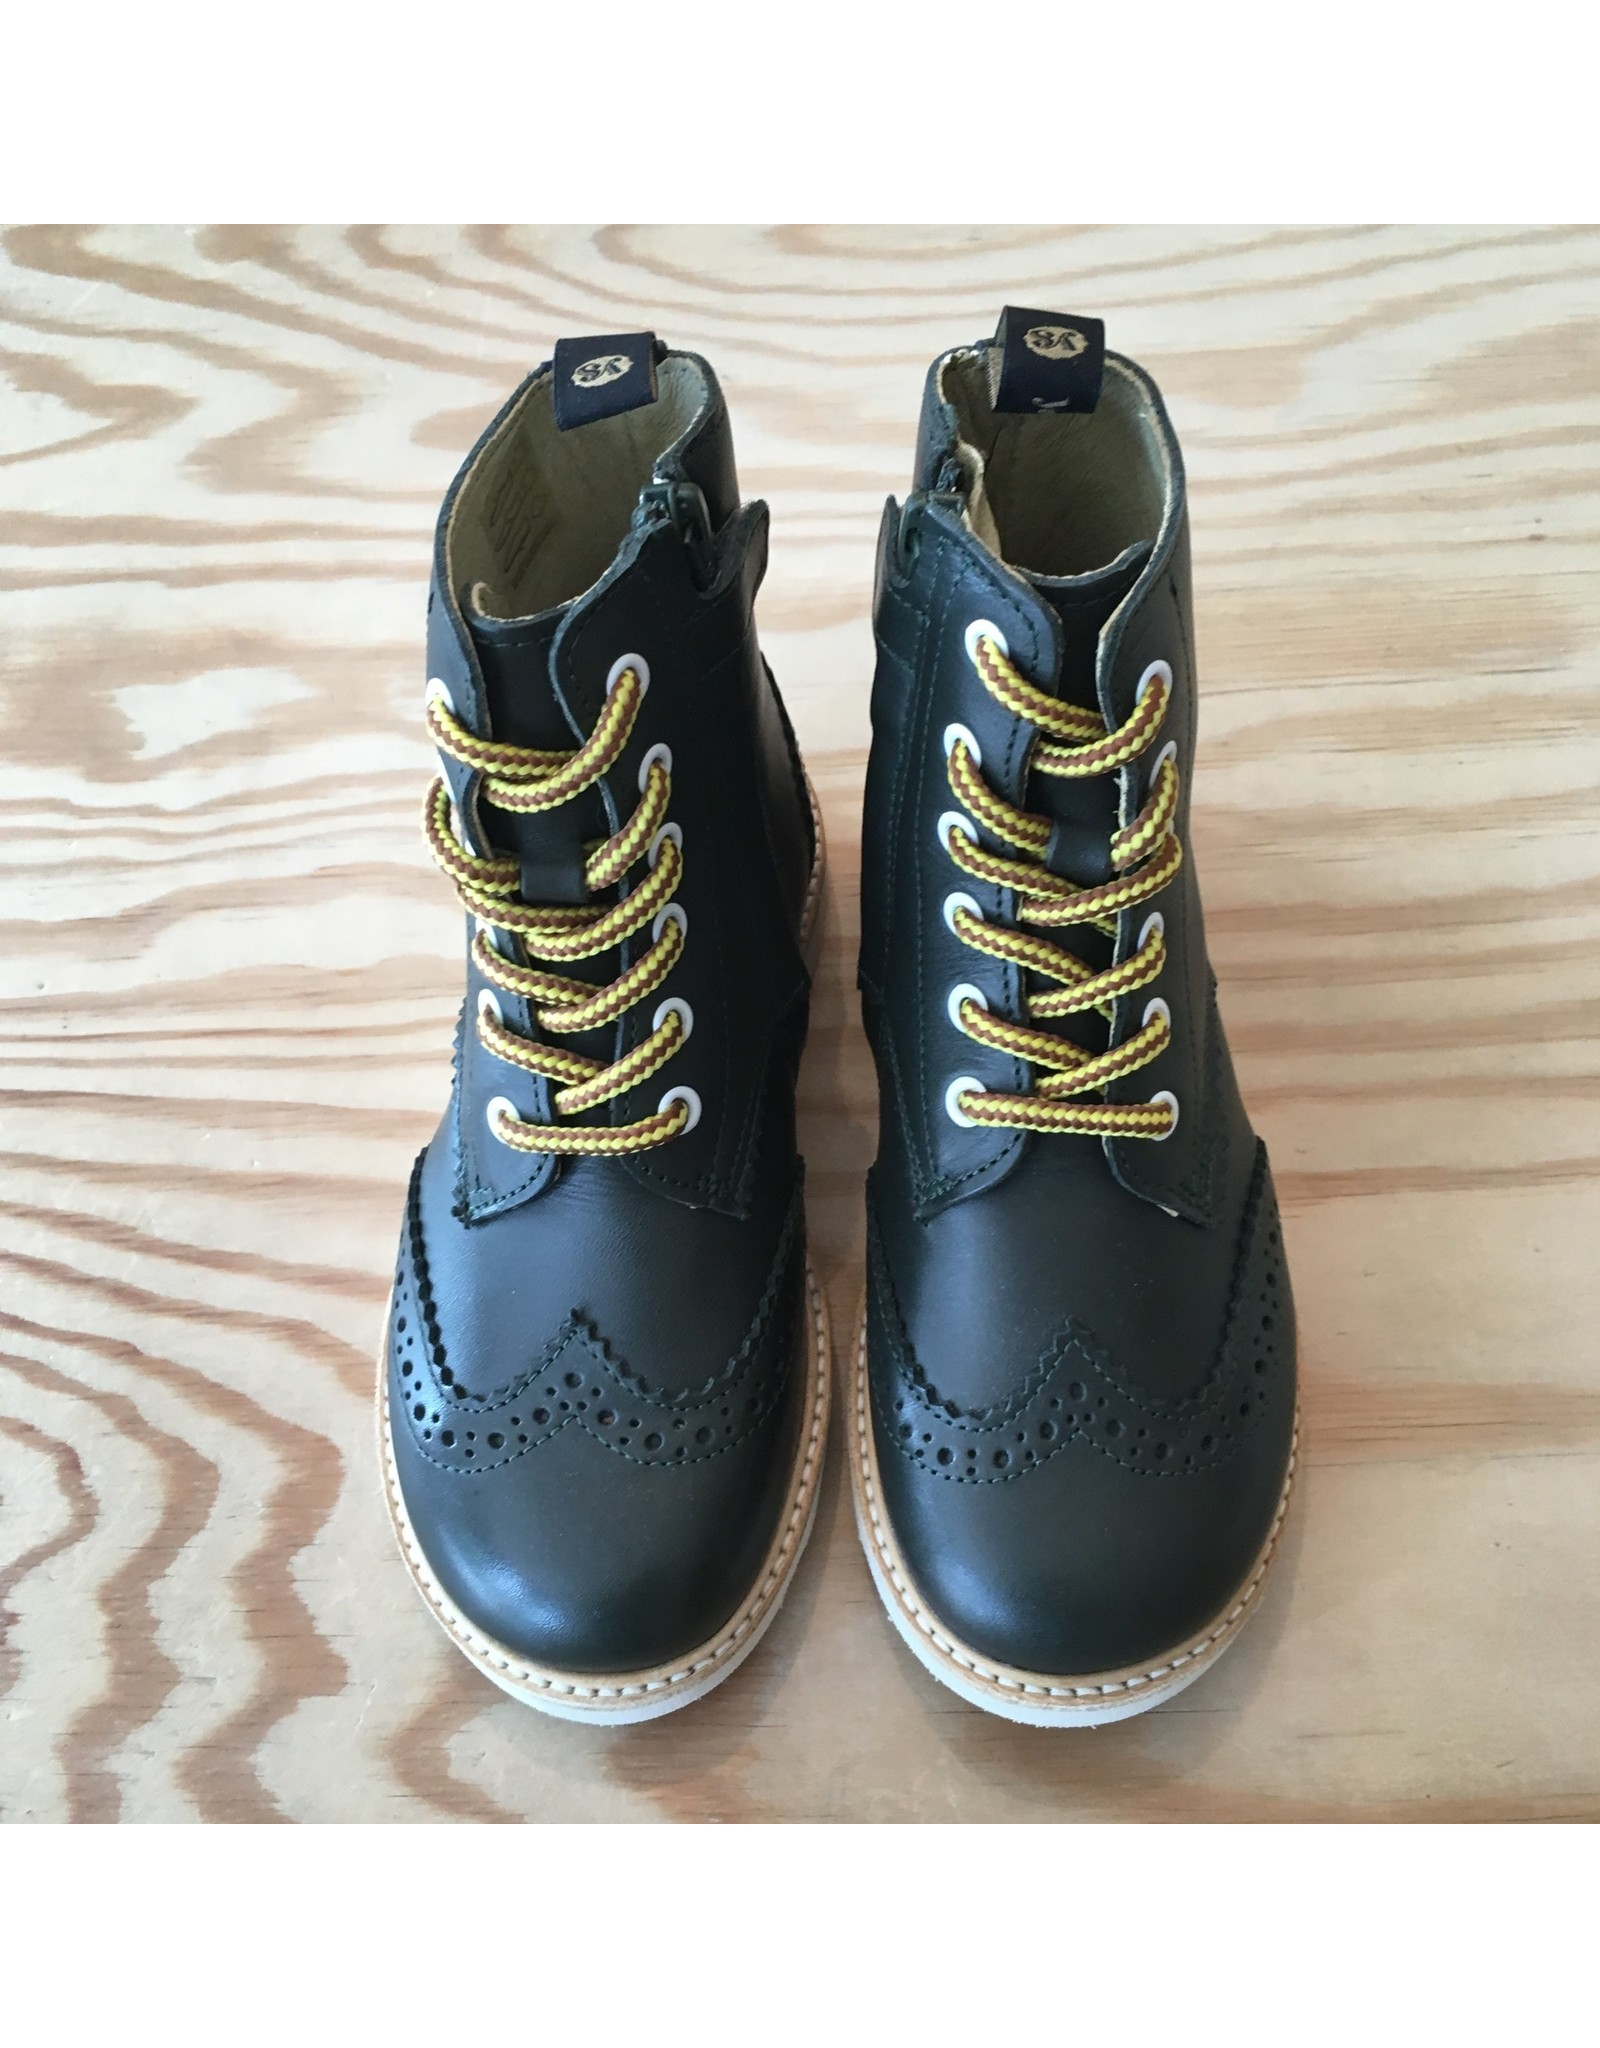 YOUNG SOLES YOUNG SOLES SIDNEY BROGUES HUNTER GREEN